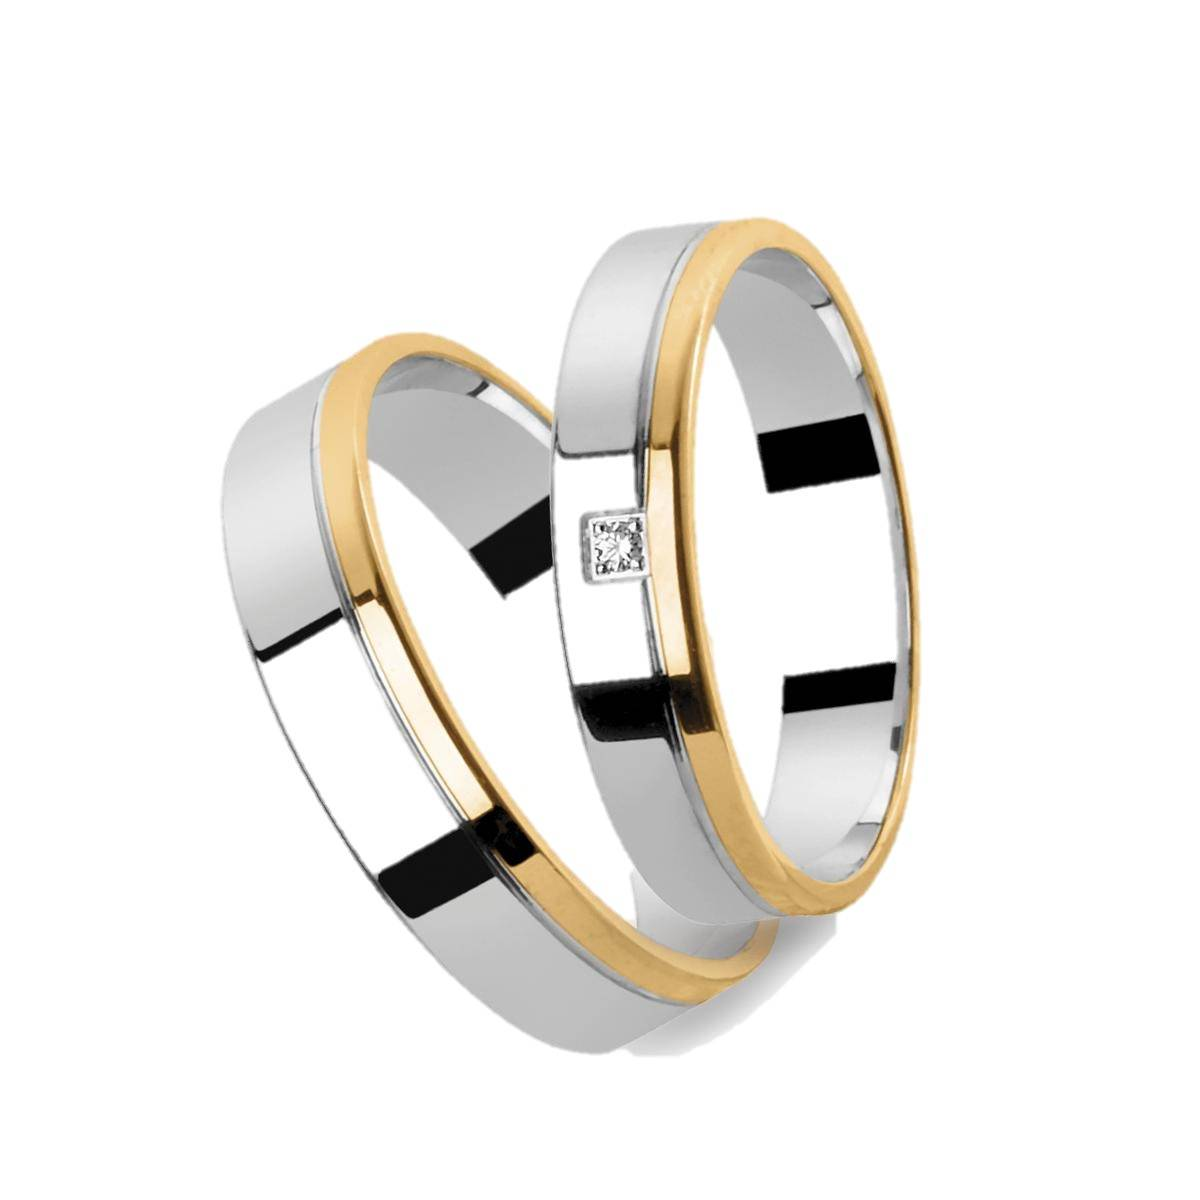 Juwelier Vandromme - Juwelen - Verlovingsring - Trouwring  – House of Weddings - 6